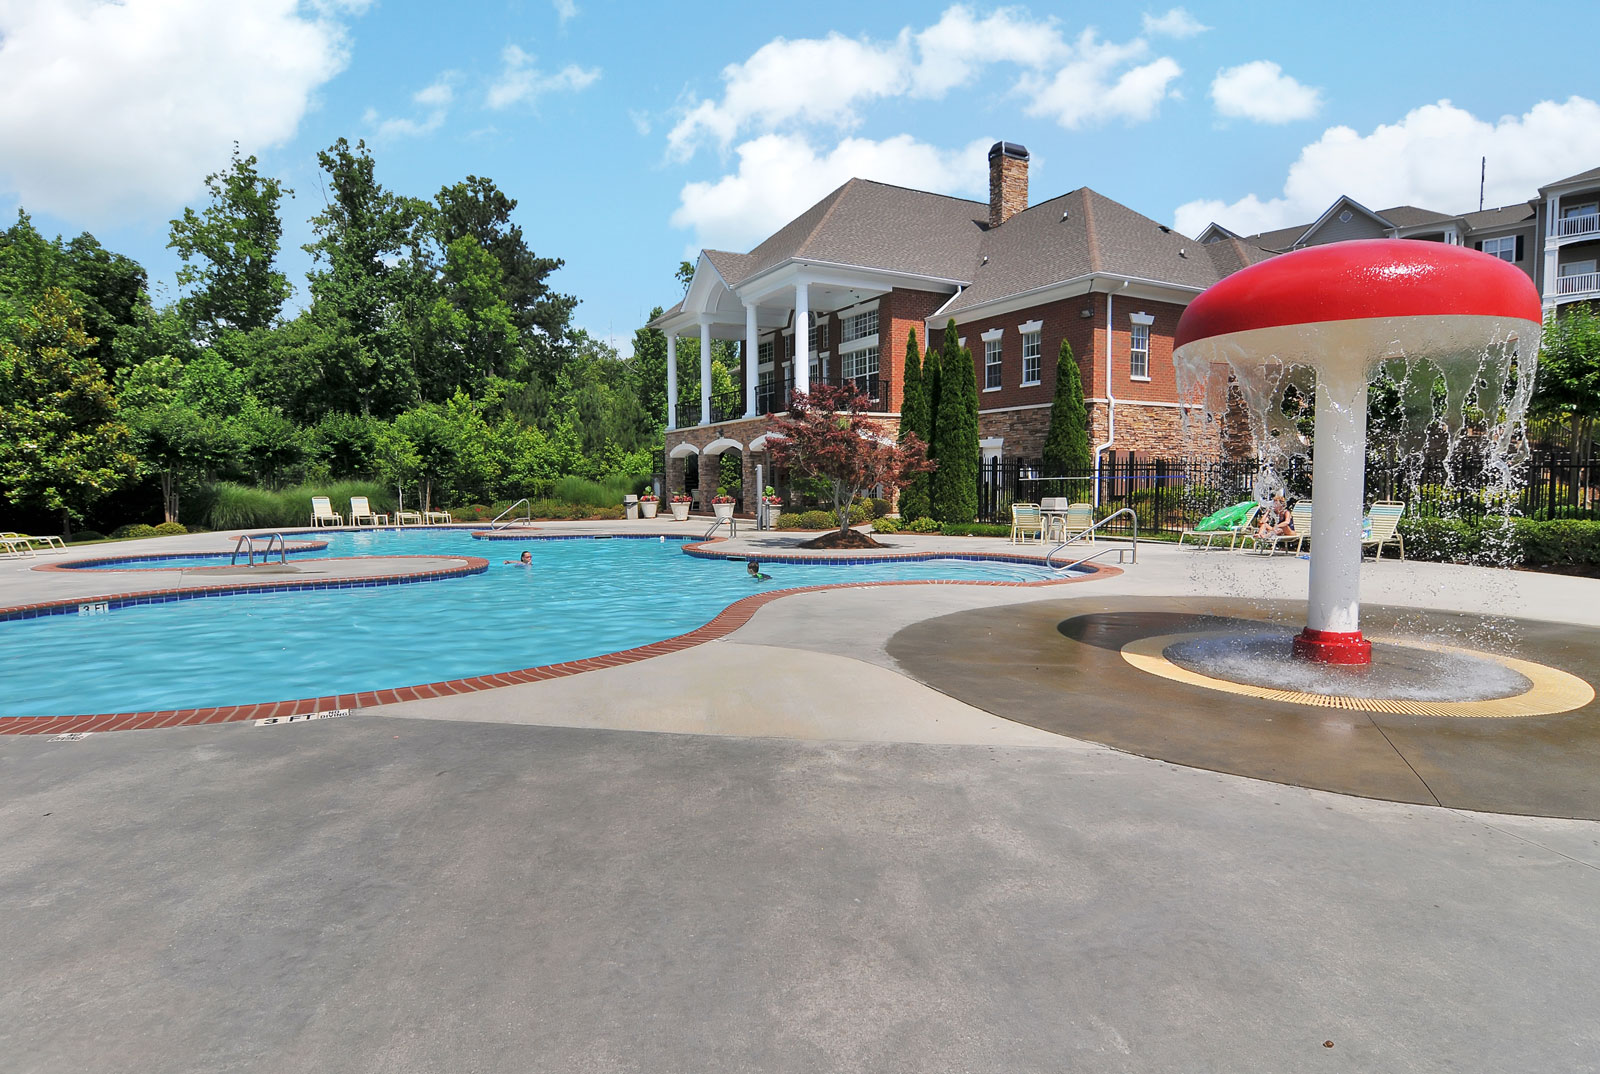 Buford apartments swimming pool